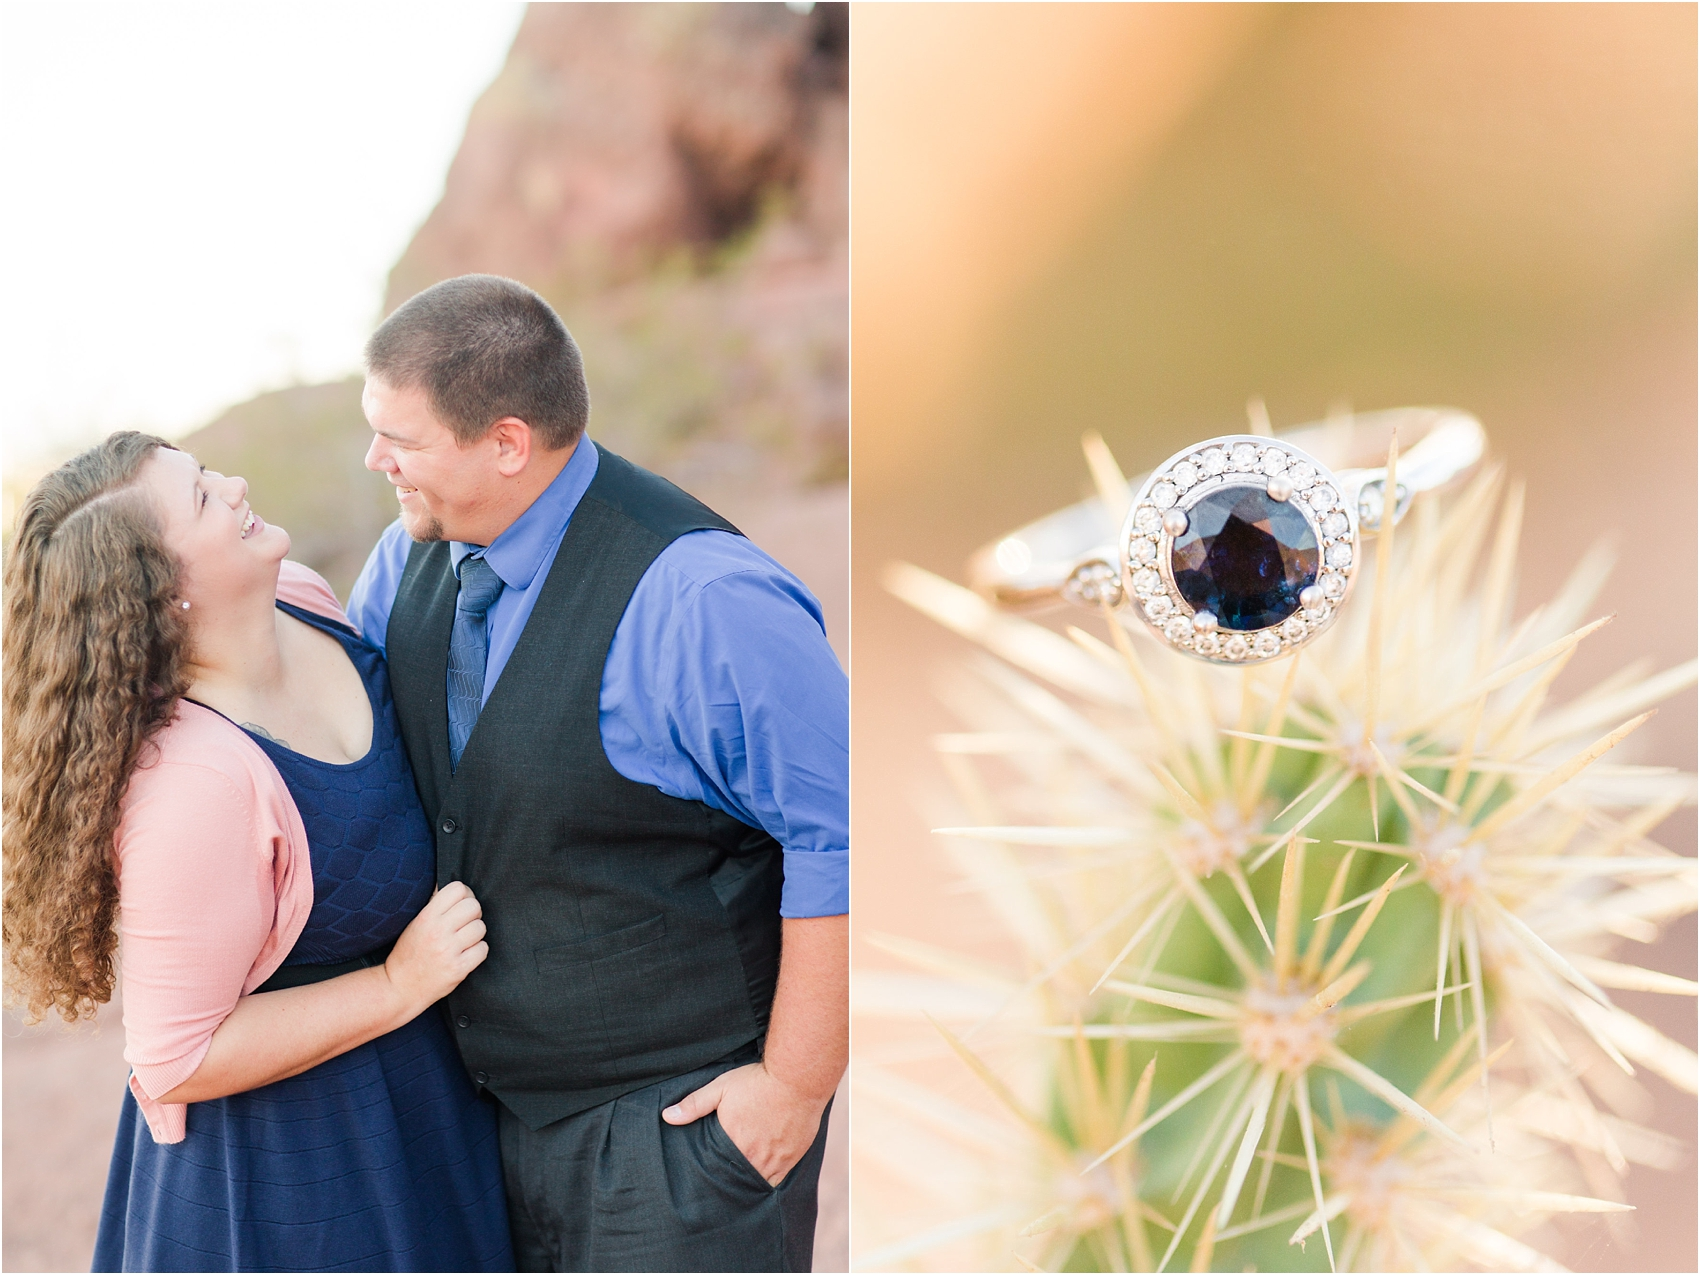 romantic-desert-engagement-photos-in-scottsdale-arizona-courtney-carolyn-photography-by-katelyn-james_0018.jpg